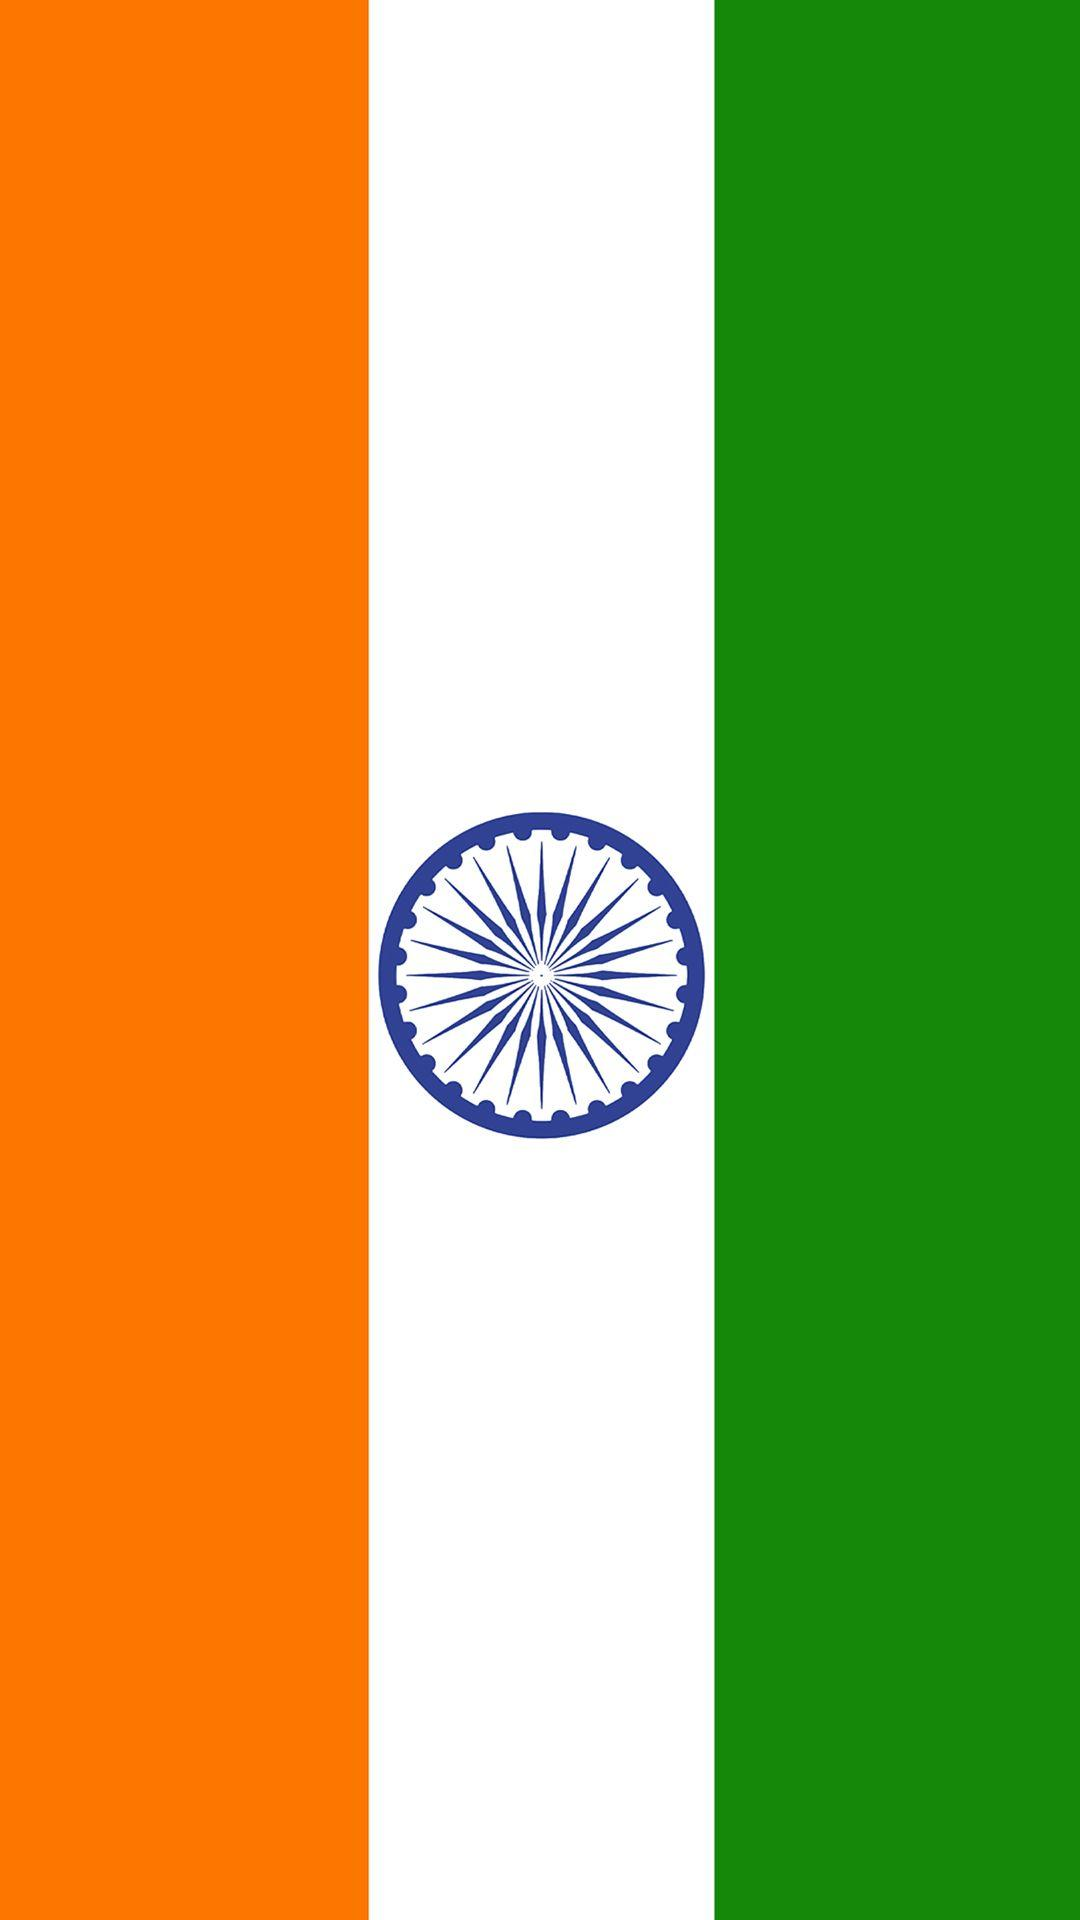 India Map Wallpapers For Mobile - Wallpaper Cave